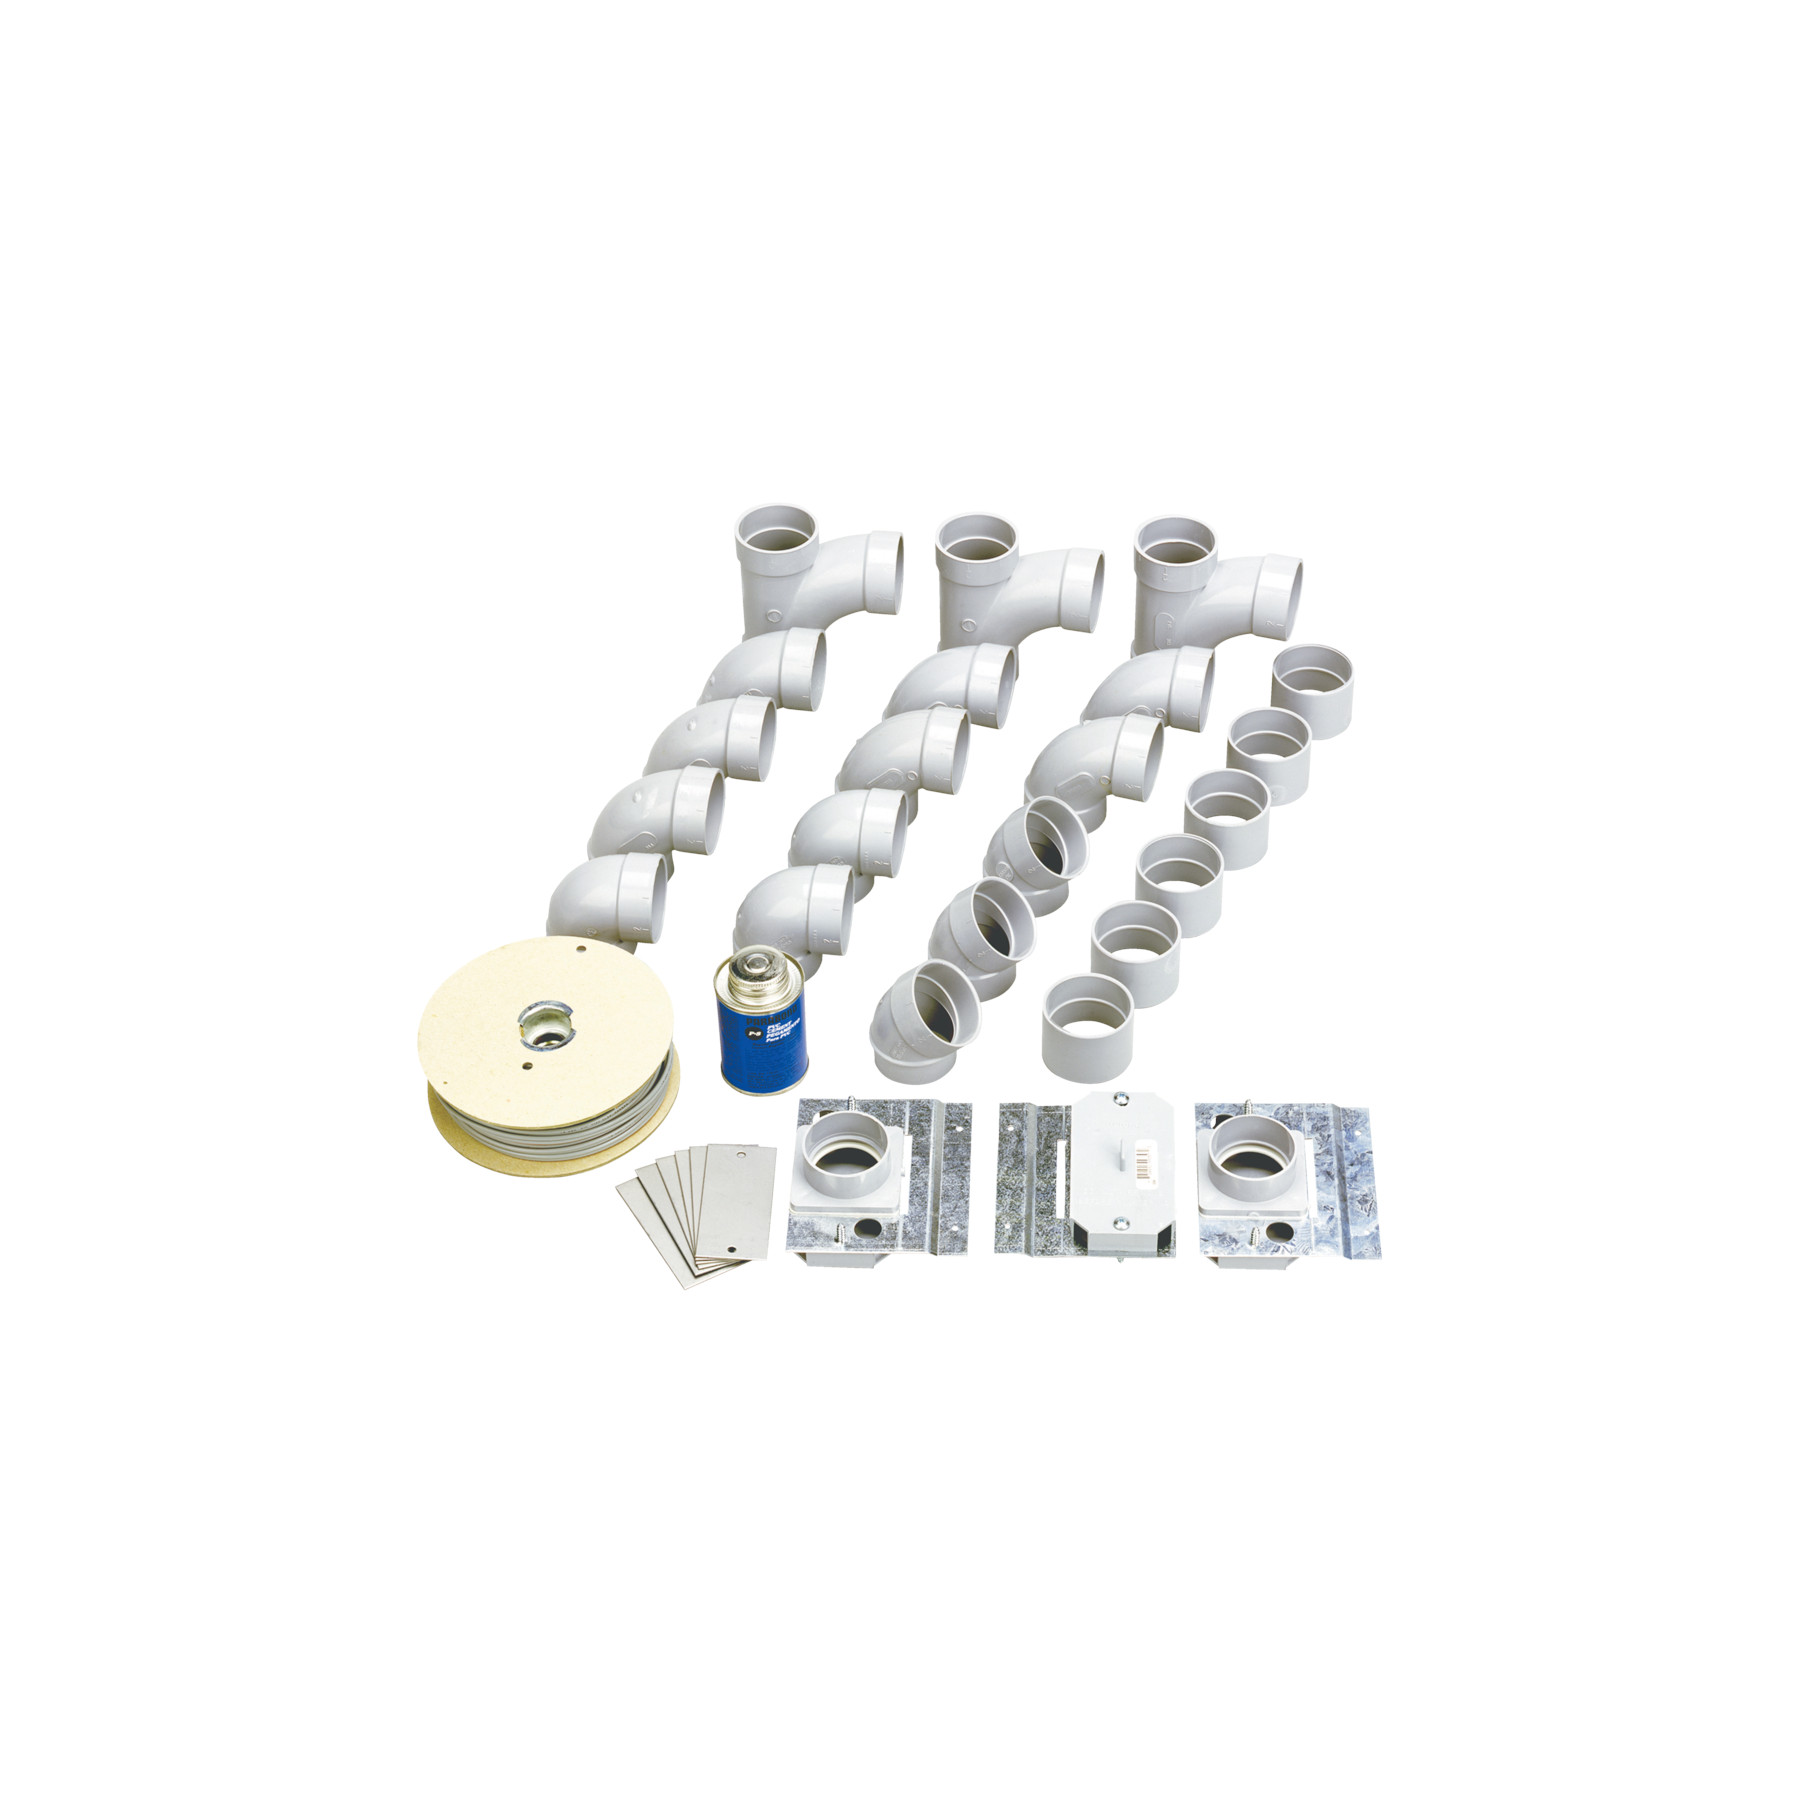 NuTone® Rough-in Kit for 3-Inlet Installation